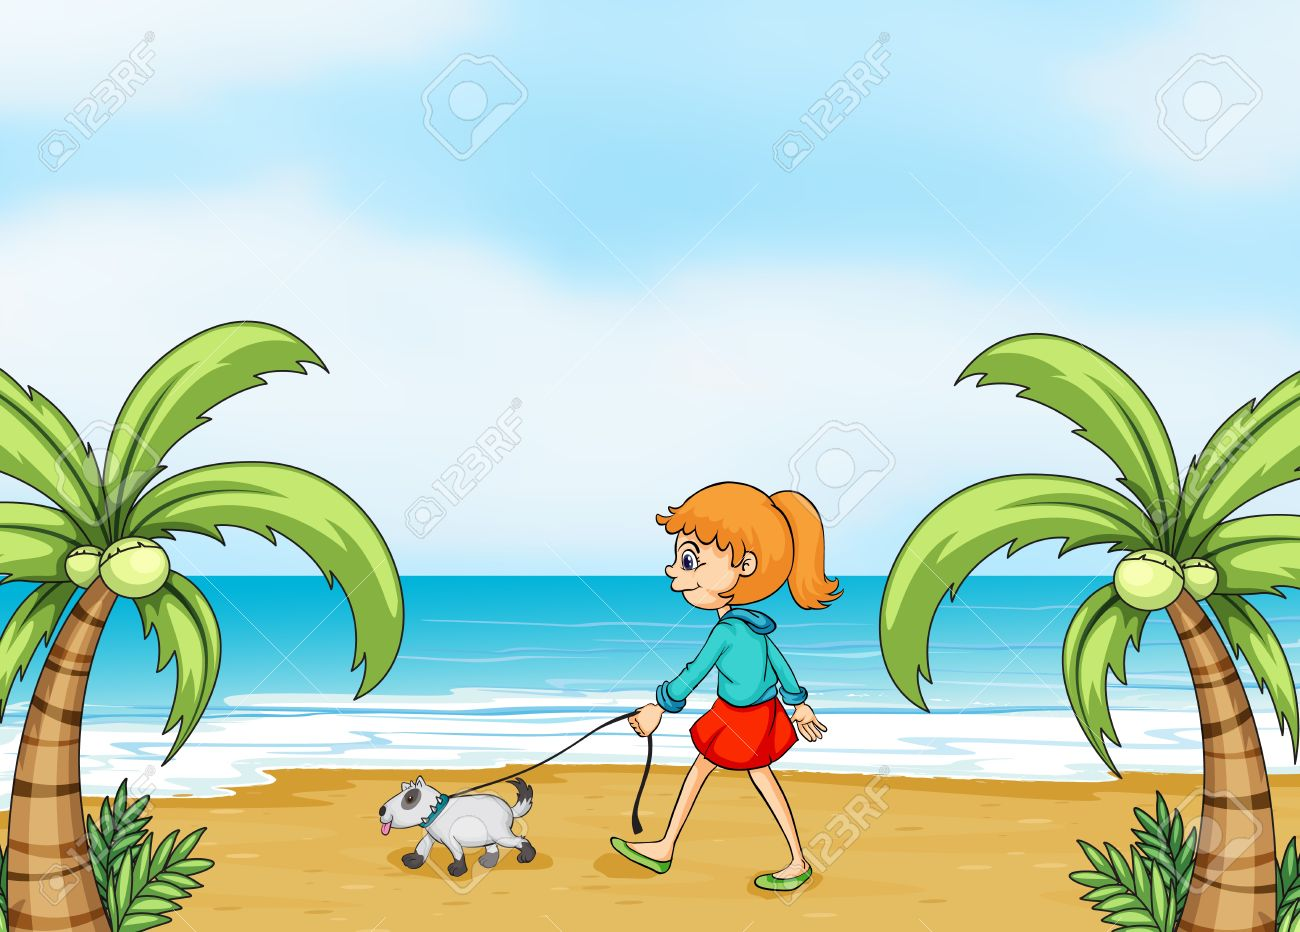 Walking On the Beach Clip Art.